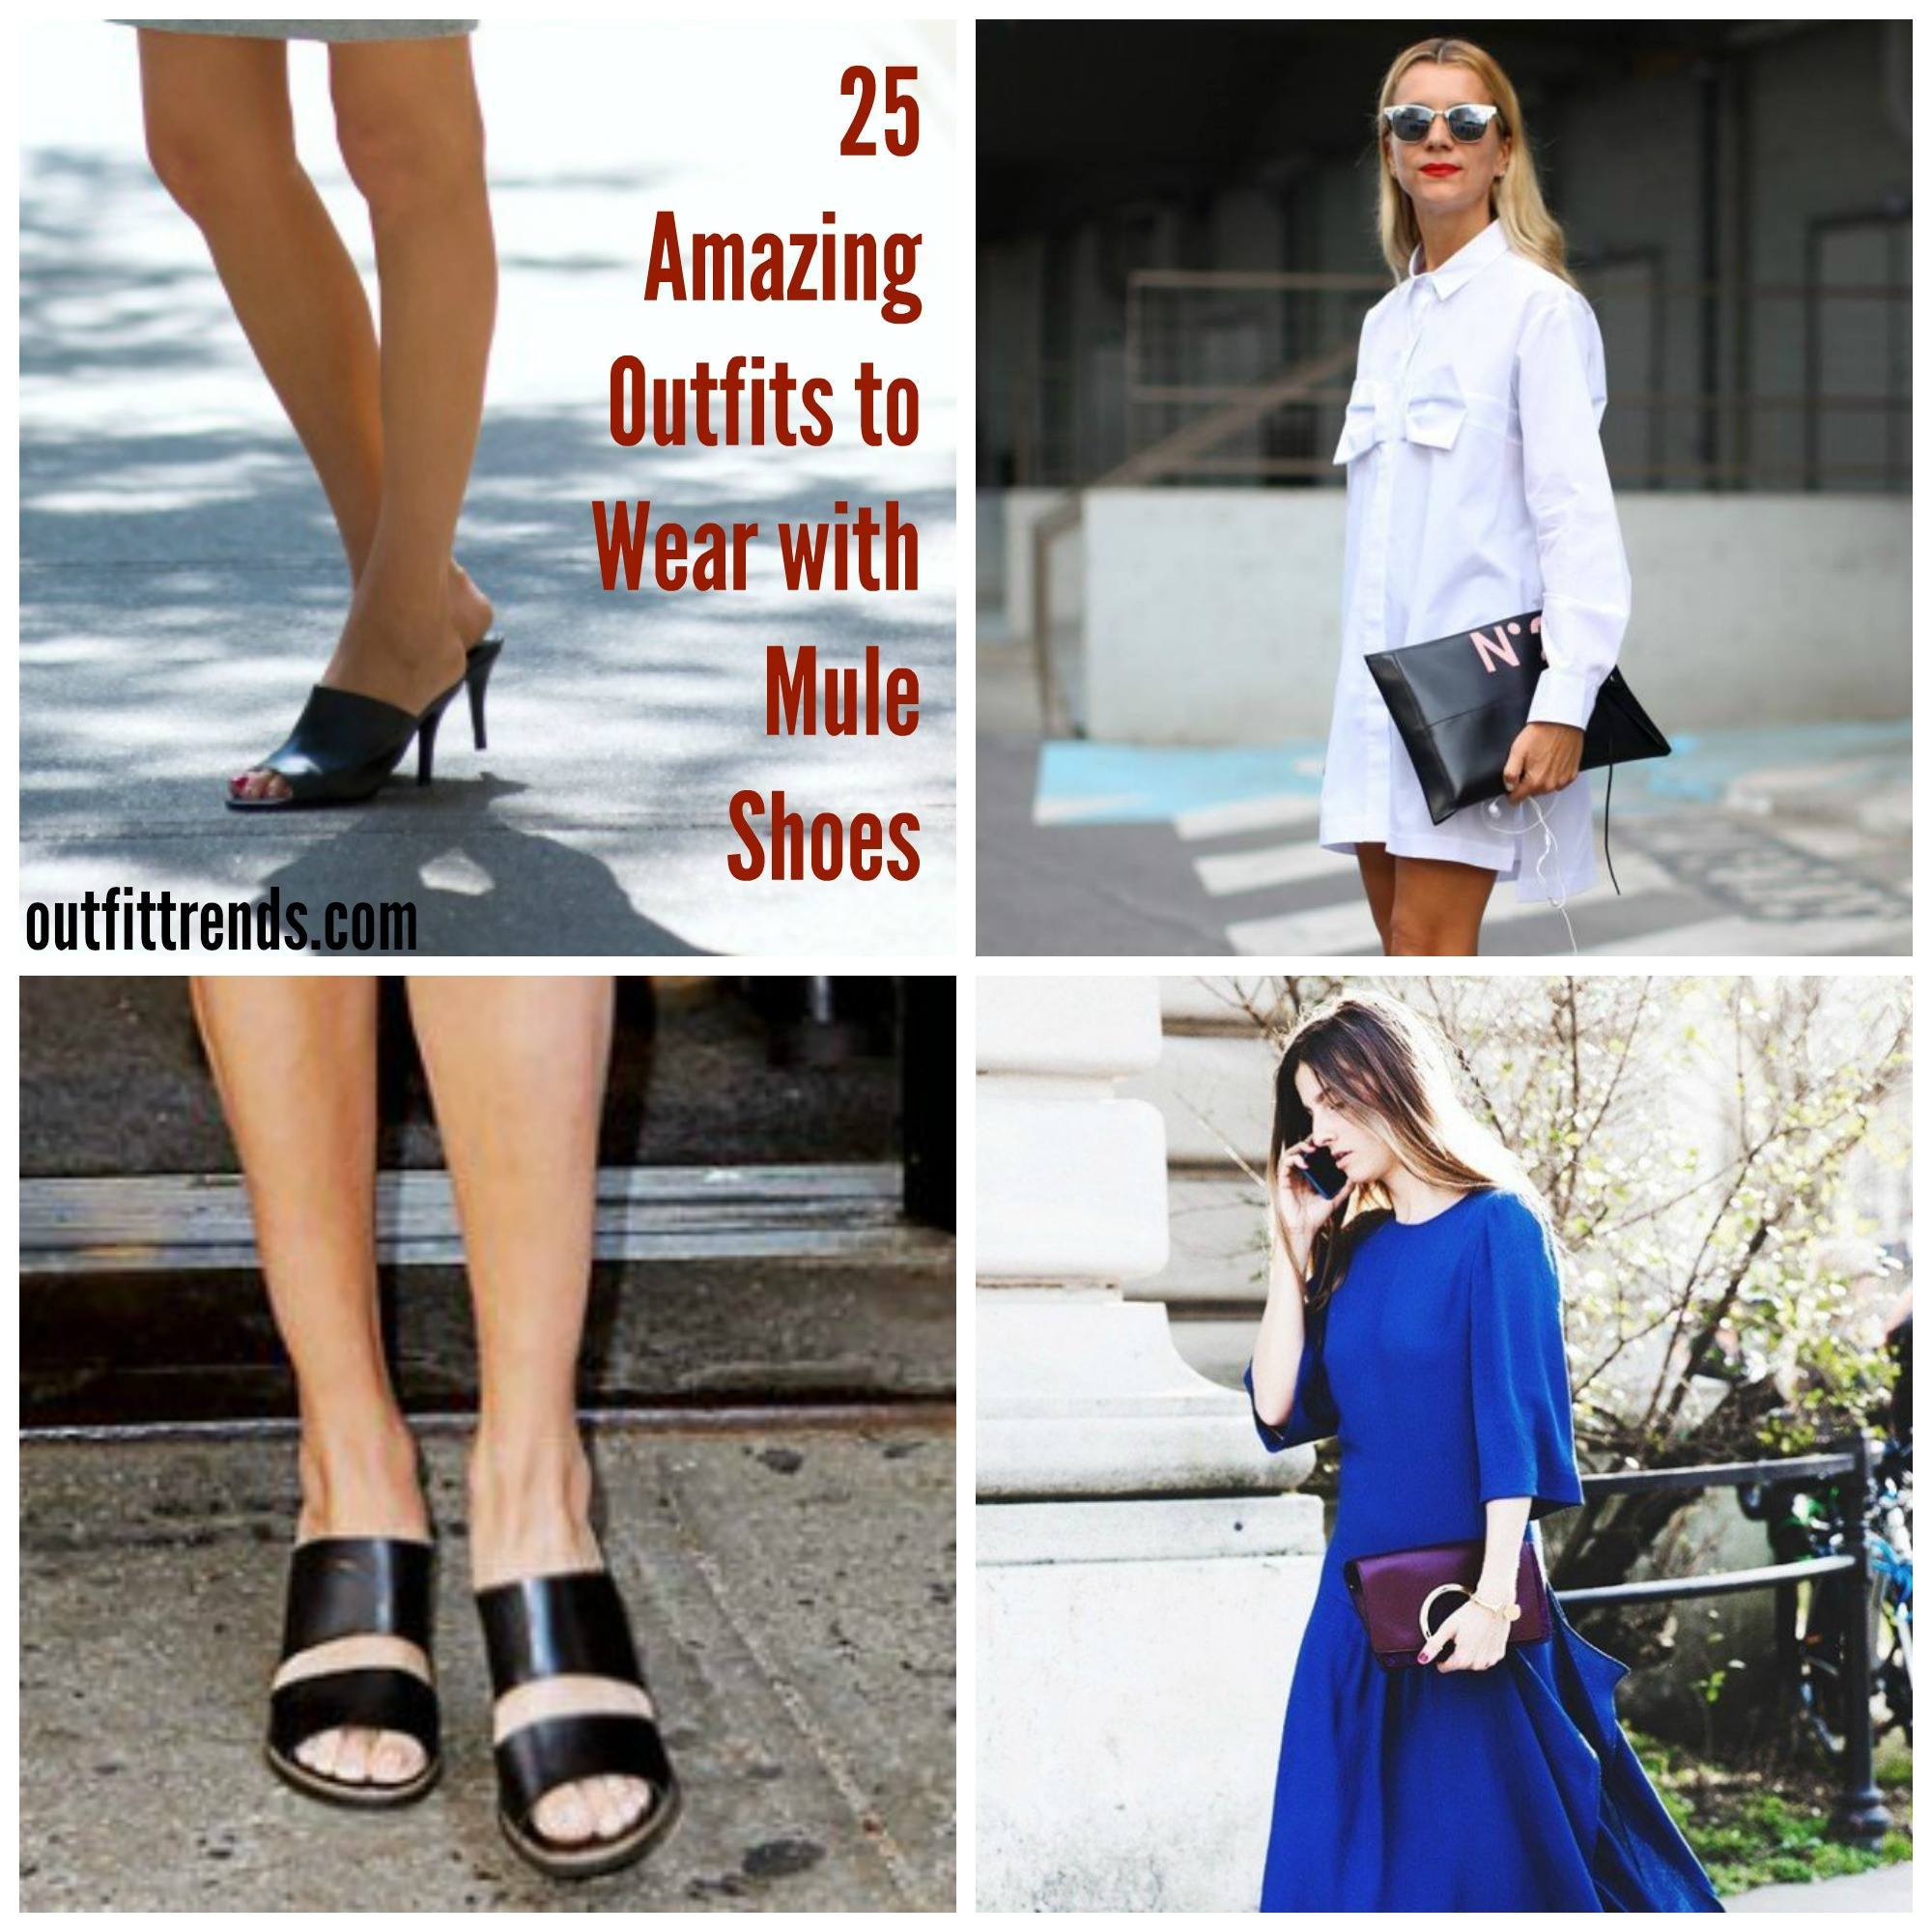 PicMonkey-Collage Outfits With Mules- 25 Ideas How To Wear Mules Shoes